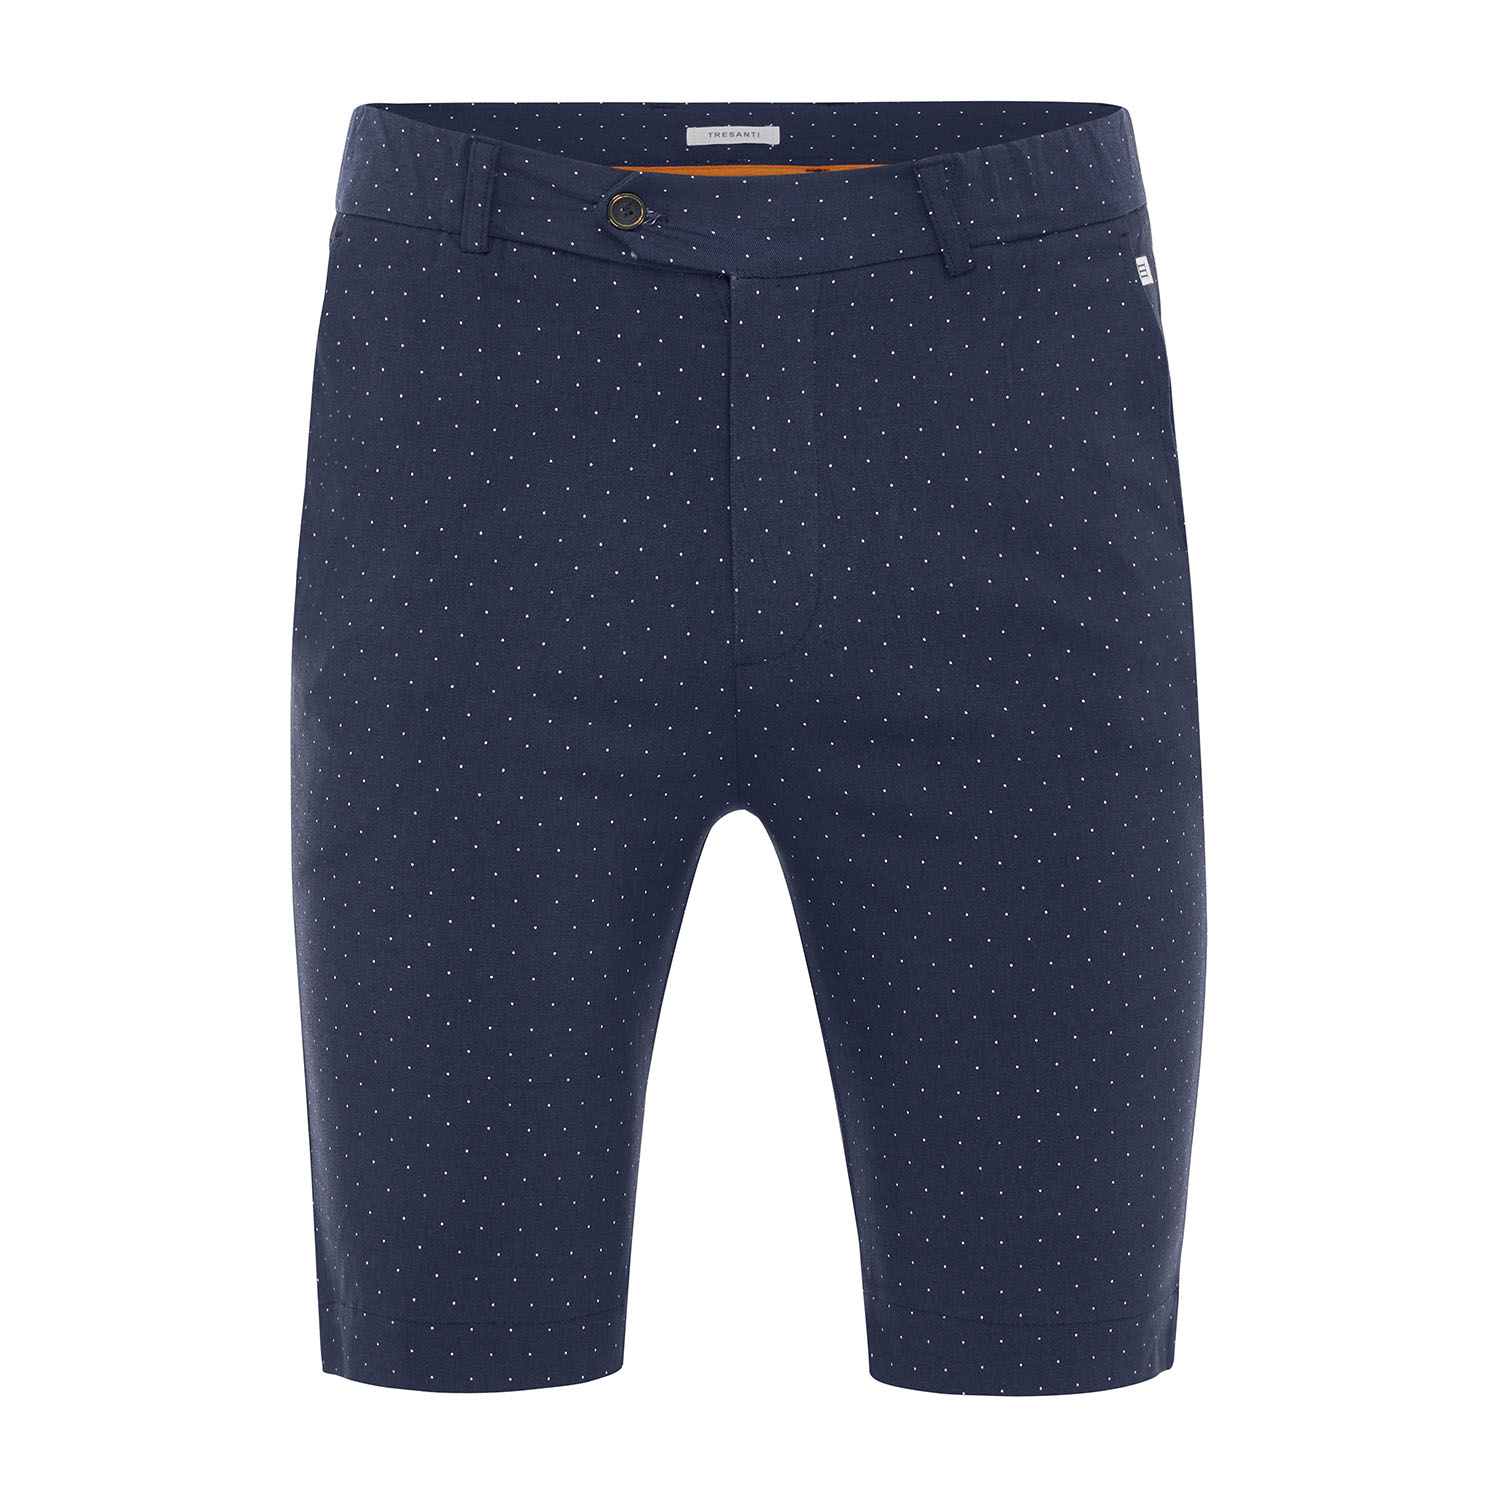 Marlon | Shorts navy with pindot